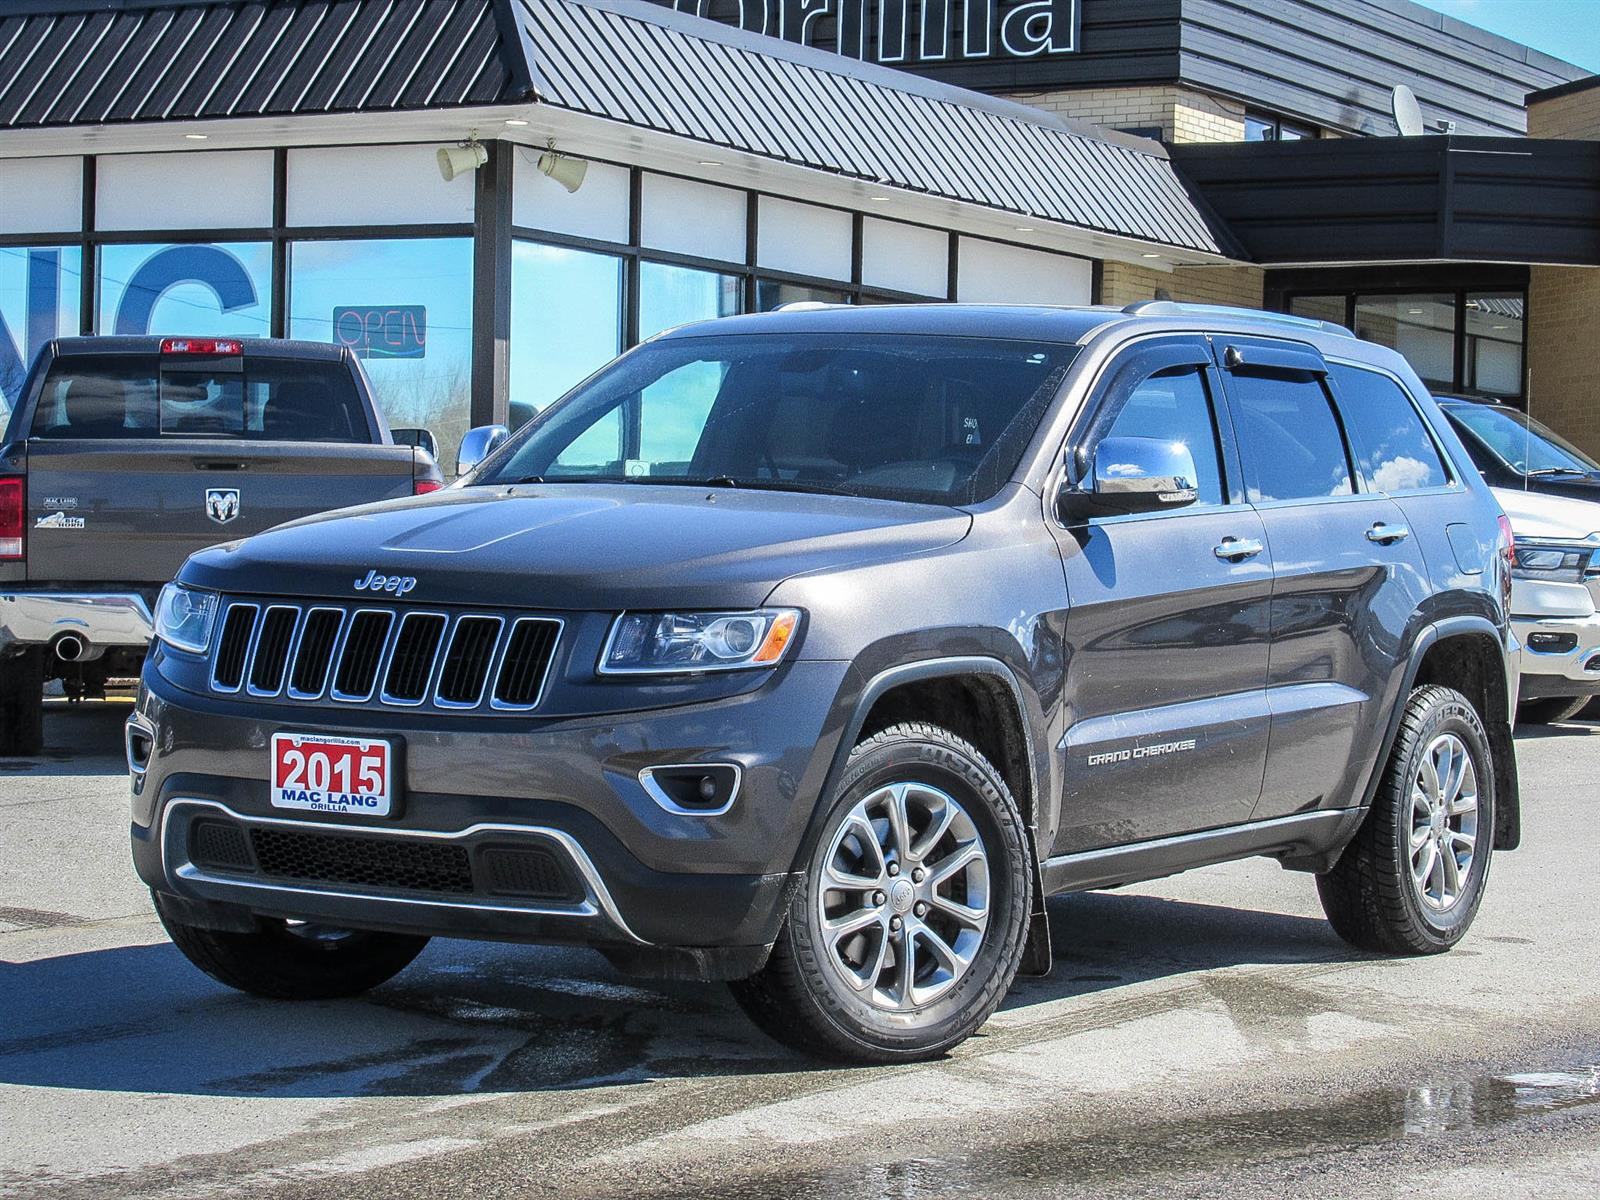 Used 2015 Jeep Grand Cherokee in Orillia,ON